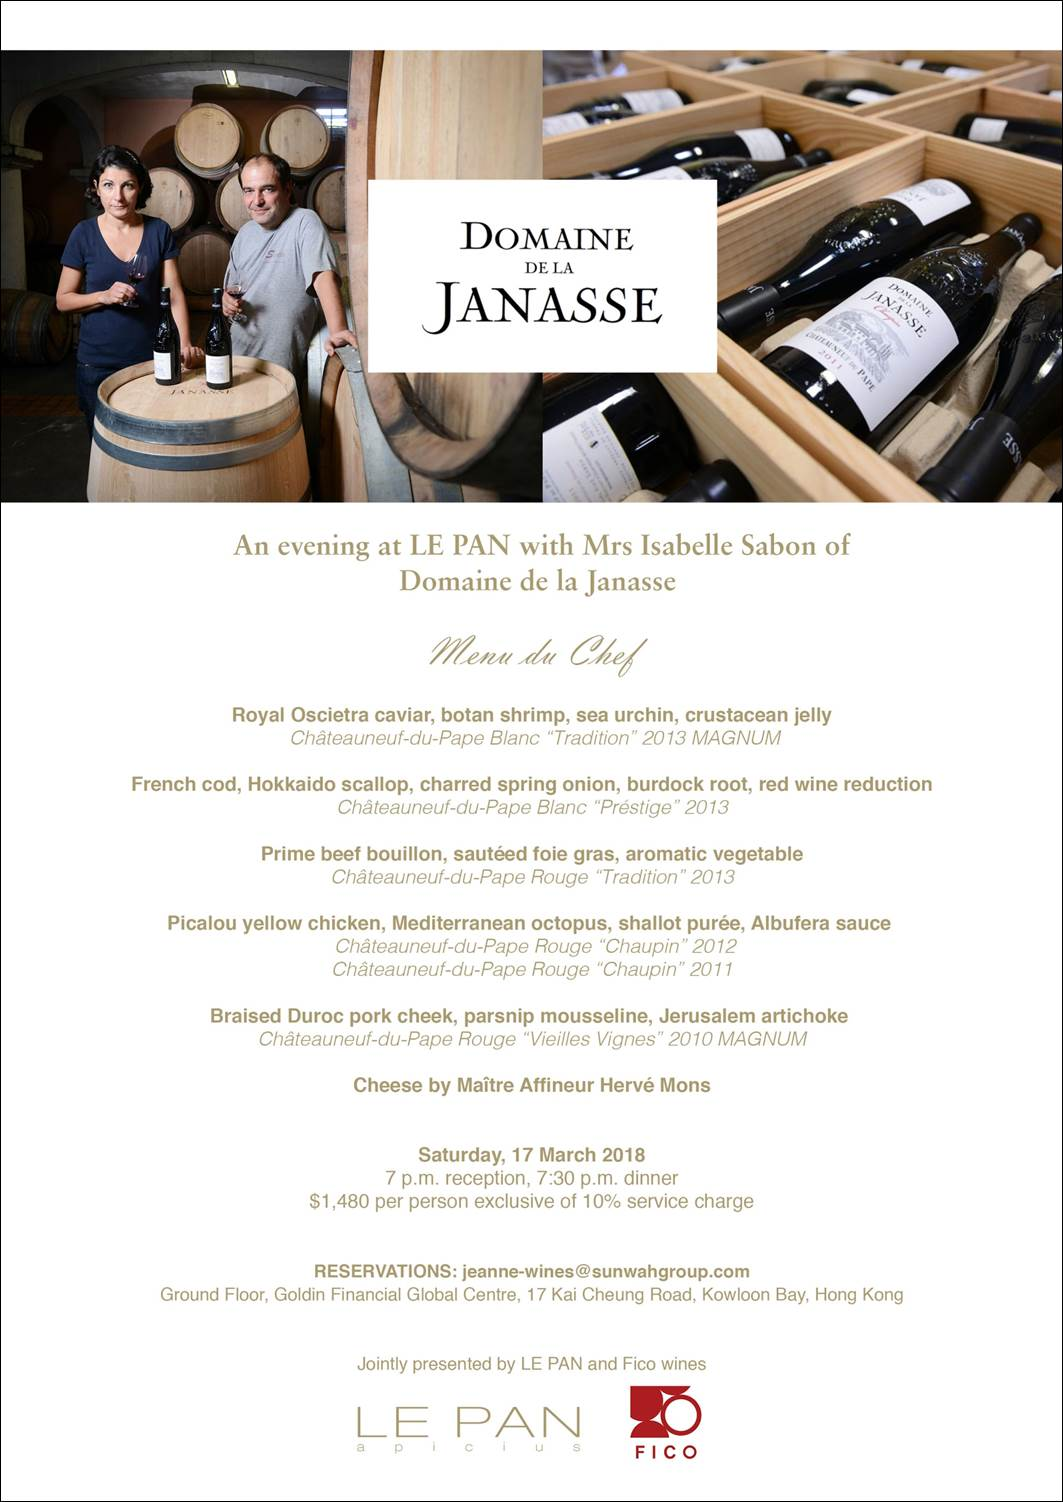 DOMAINE DE LA JANASSE WINE DINNER